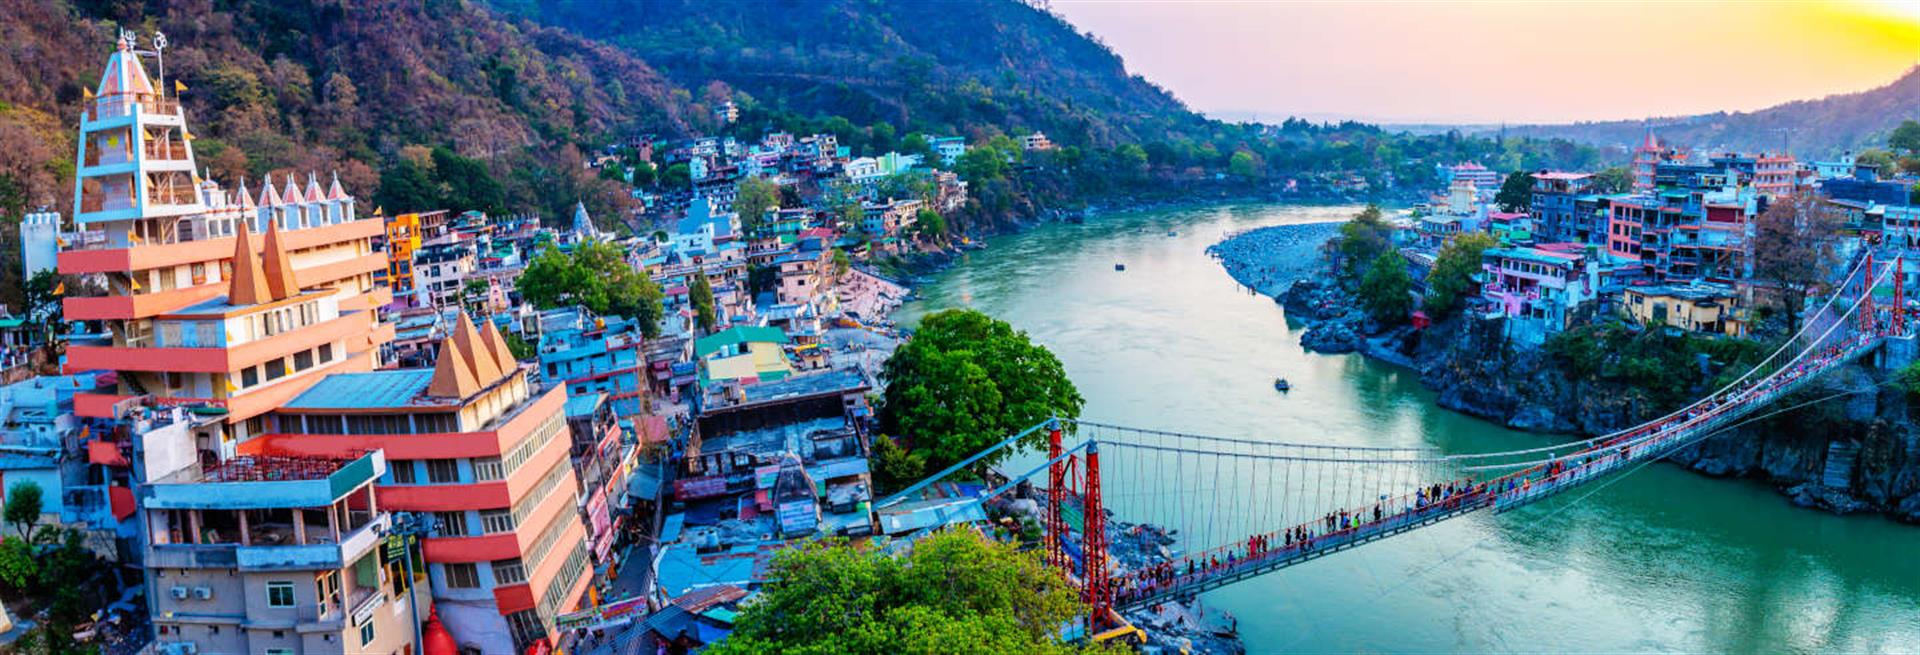 Haridwar & Rishikesh Tour Packages in India